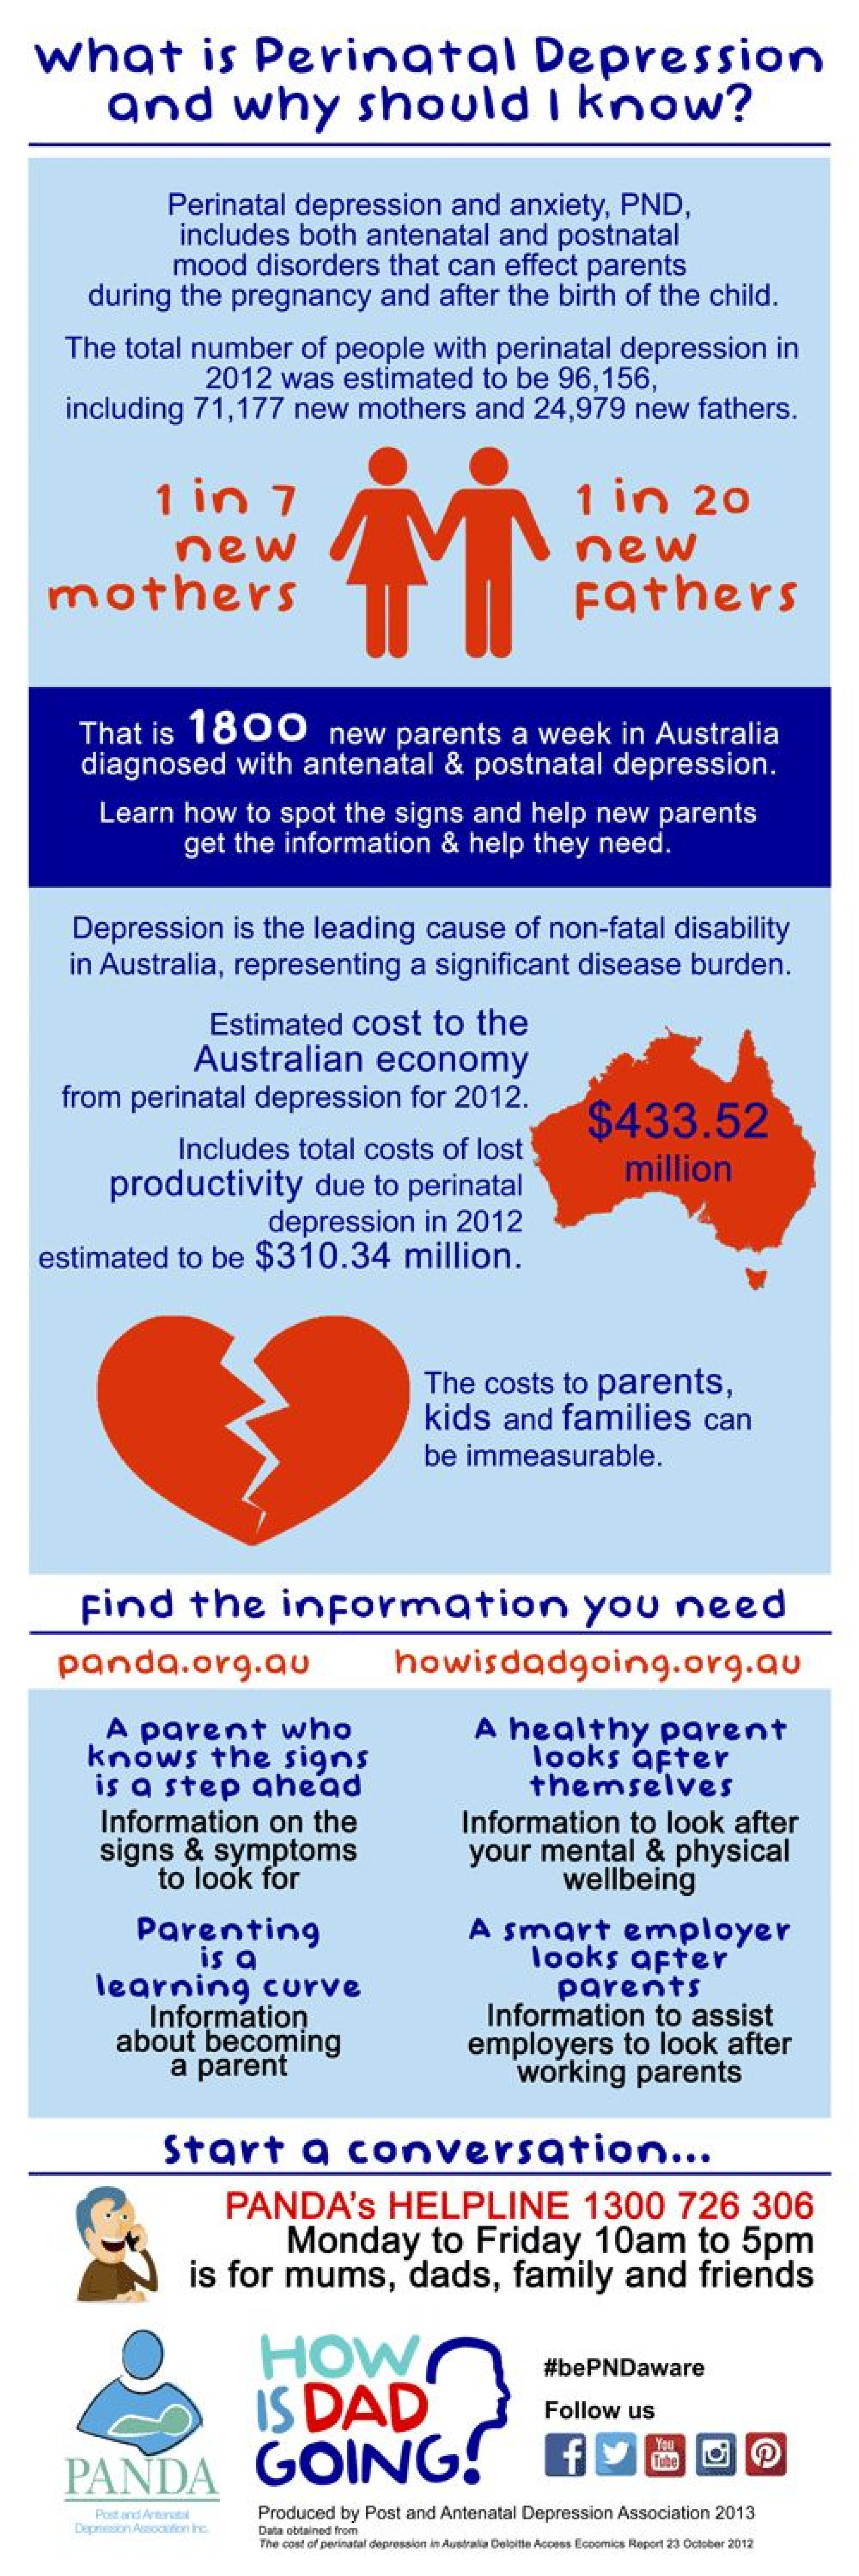 What is Perinatal Depression and why should I know? Infographic